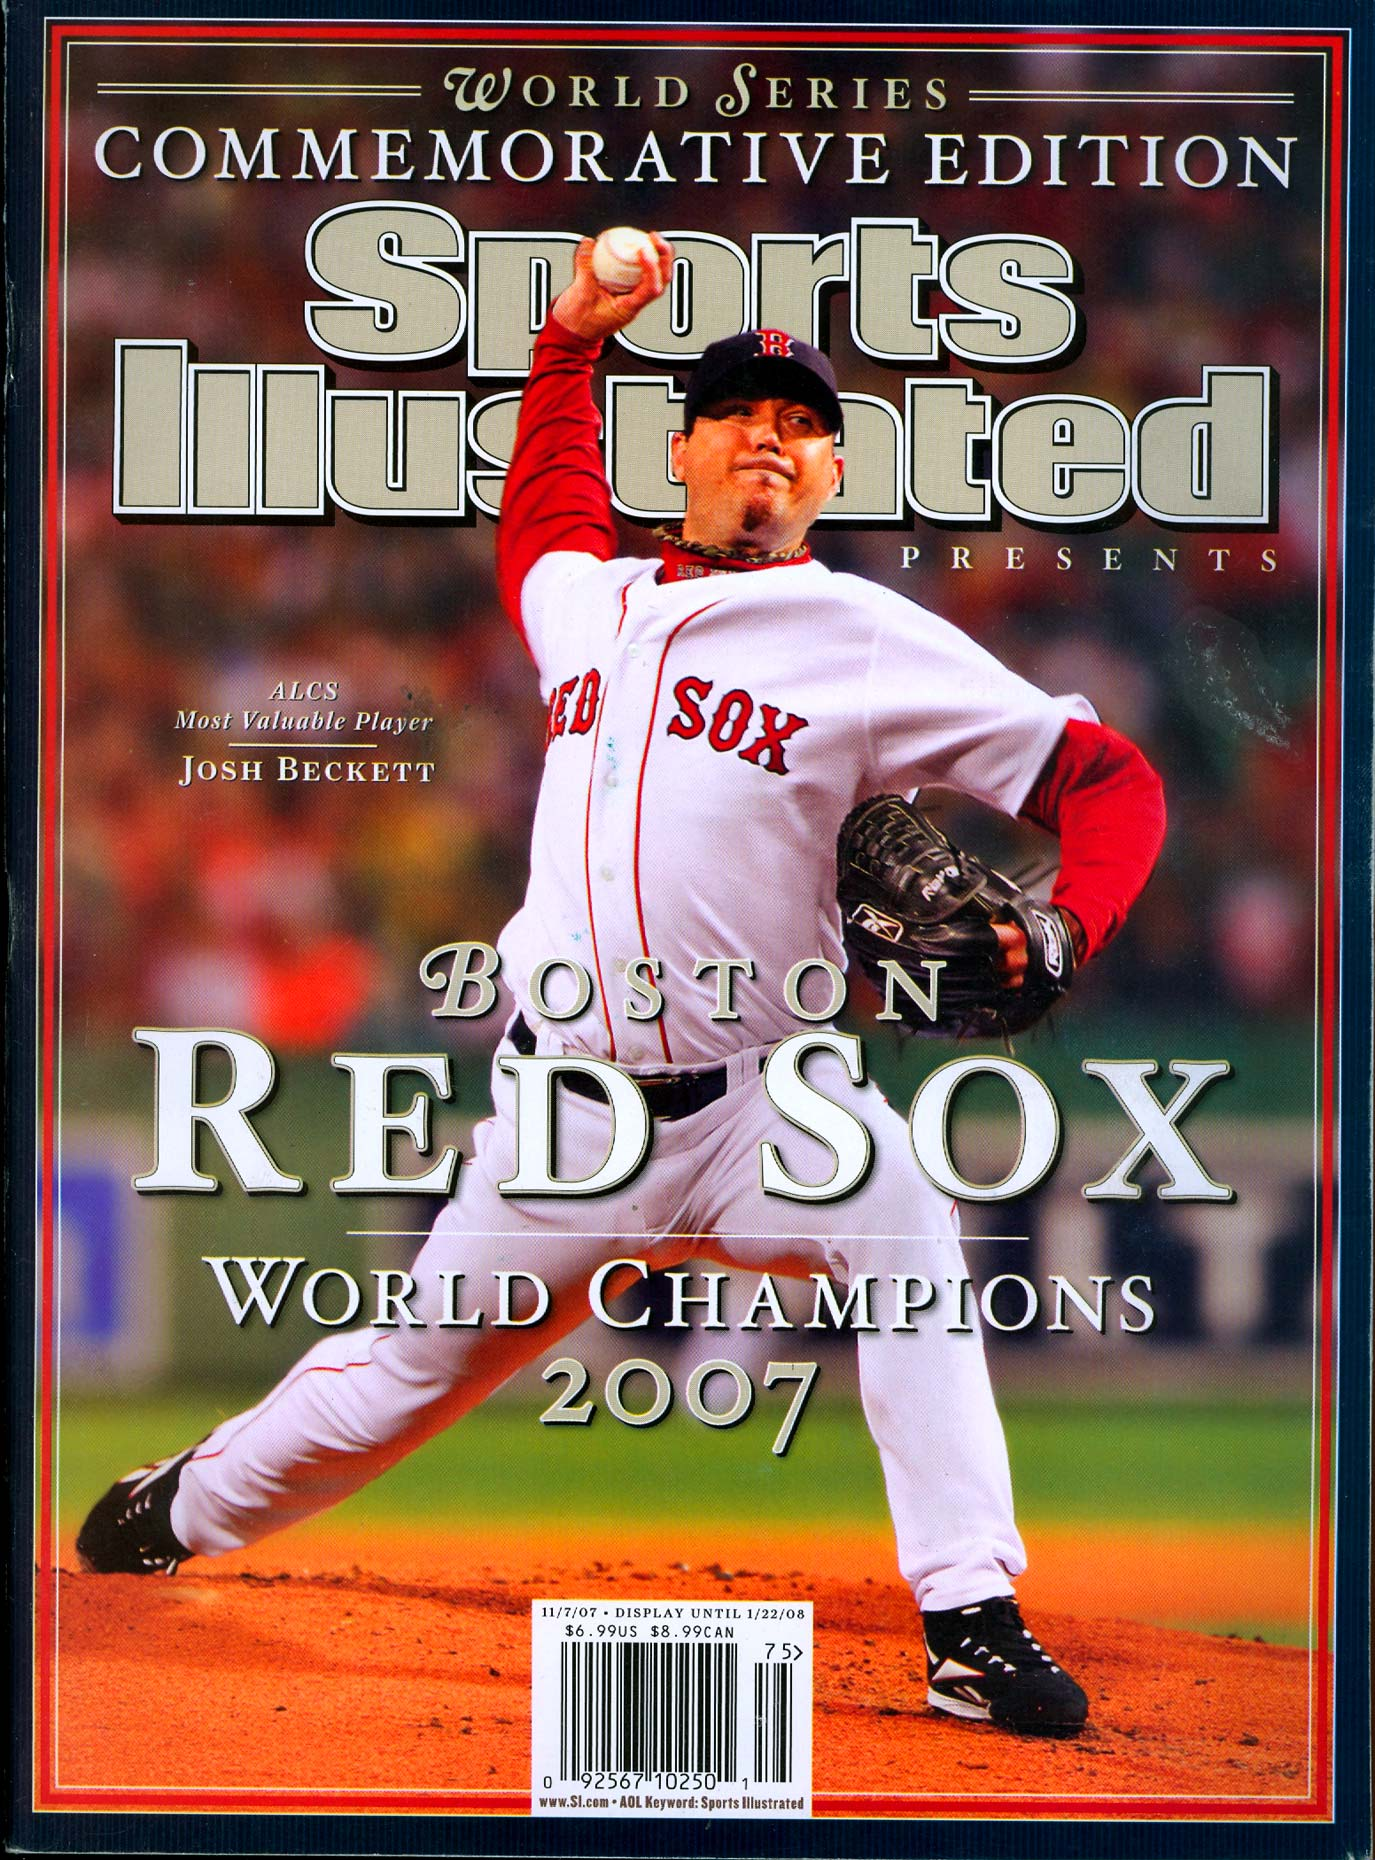 Boston Red Sox pitcher Josh Beckett on the cover of Sports Illustrated.